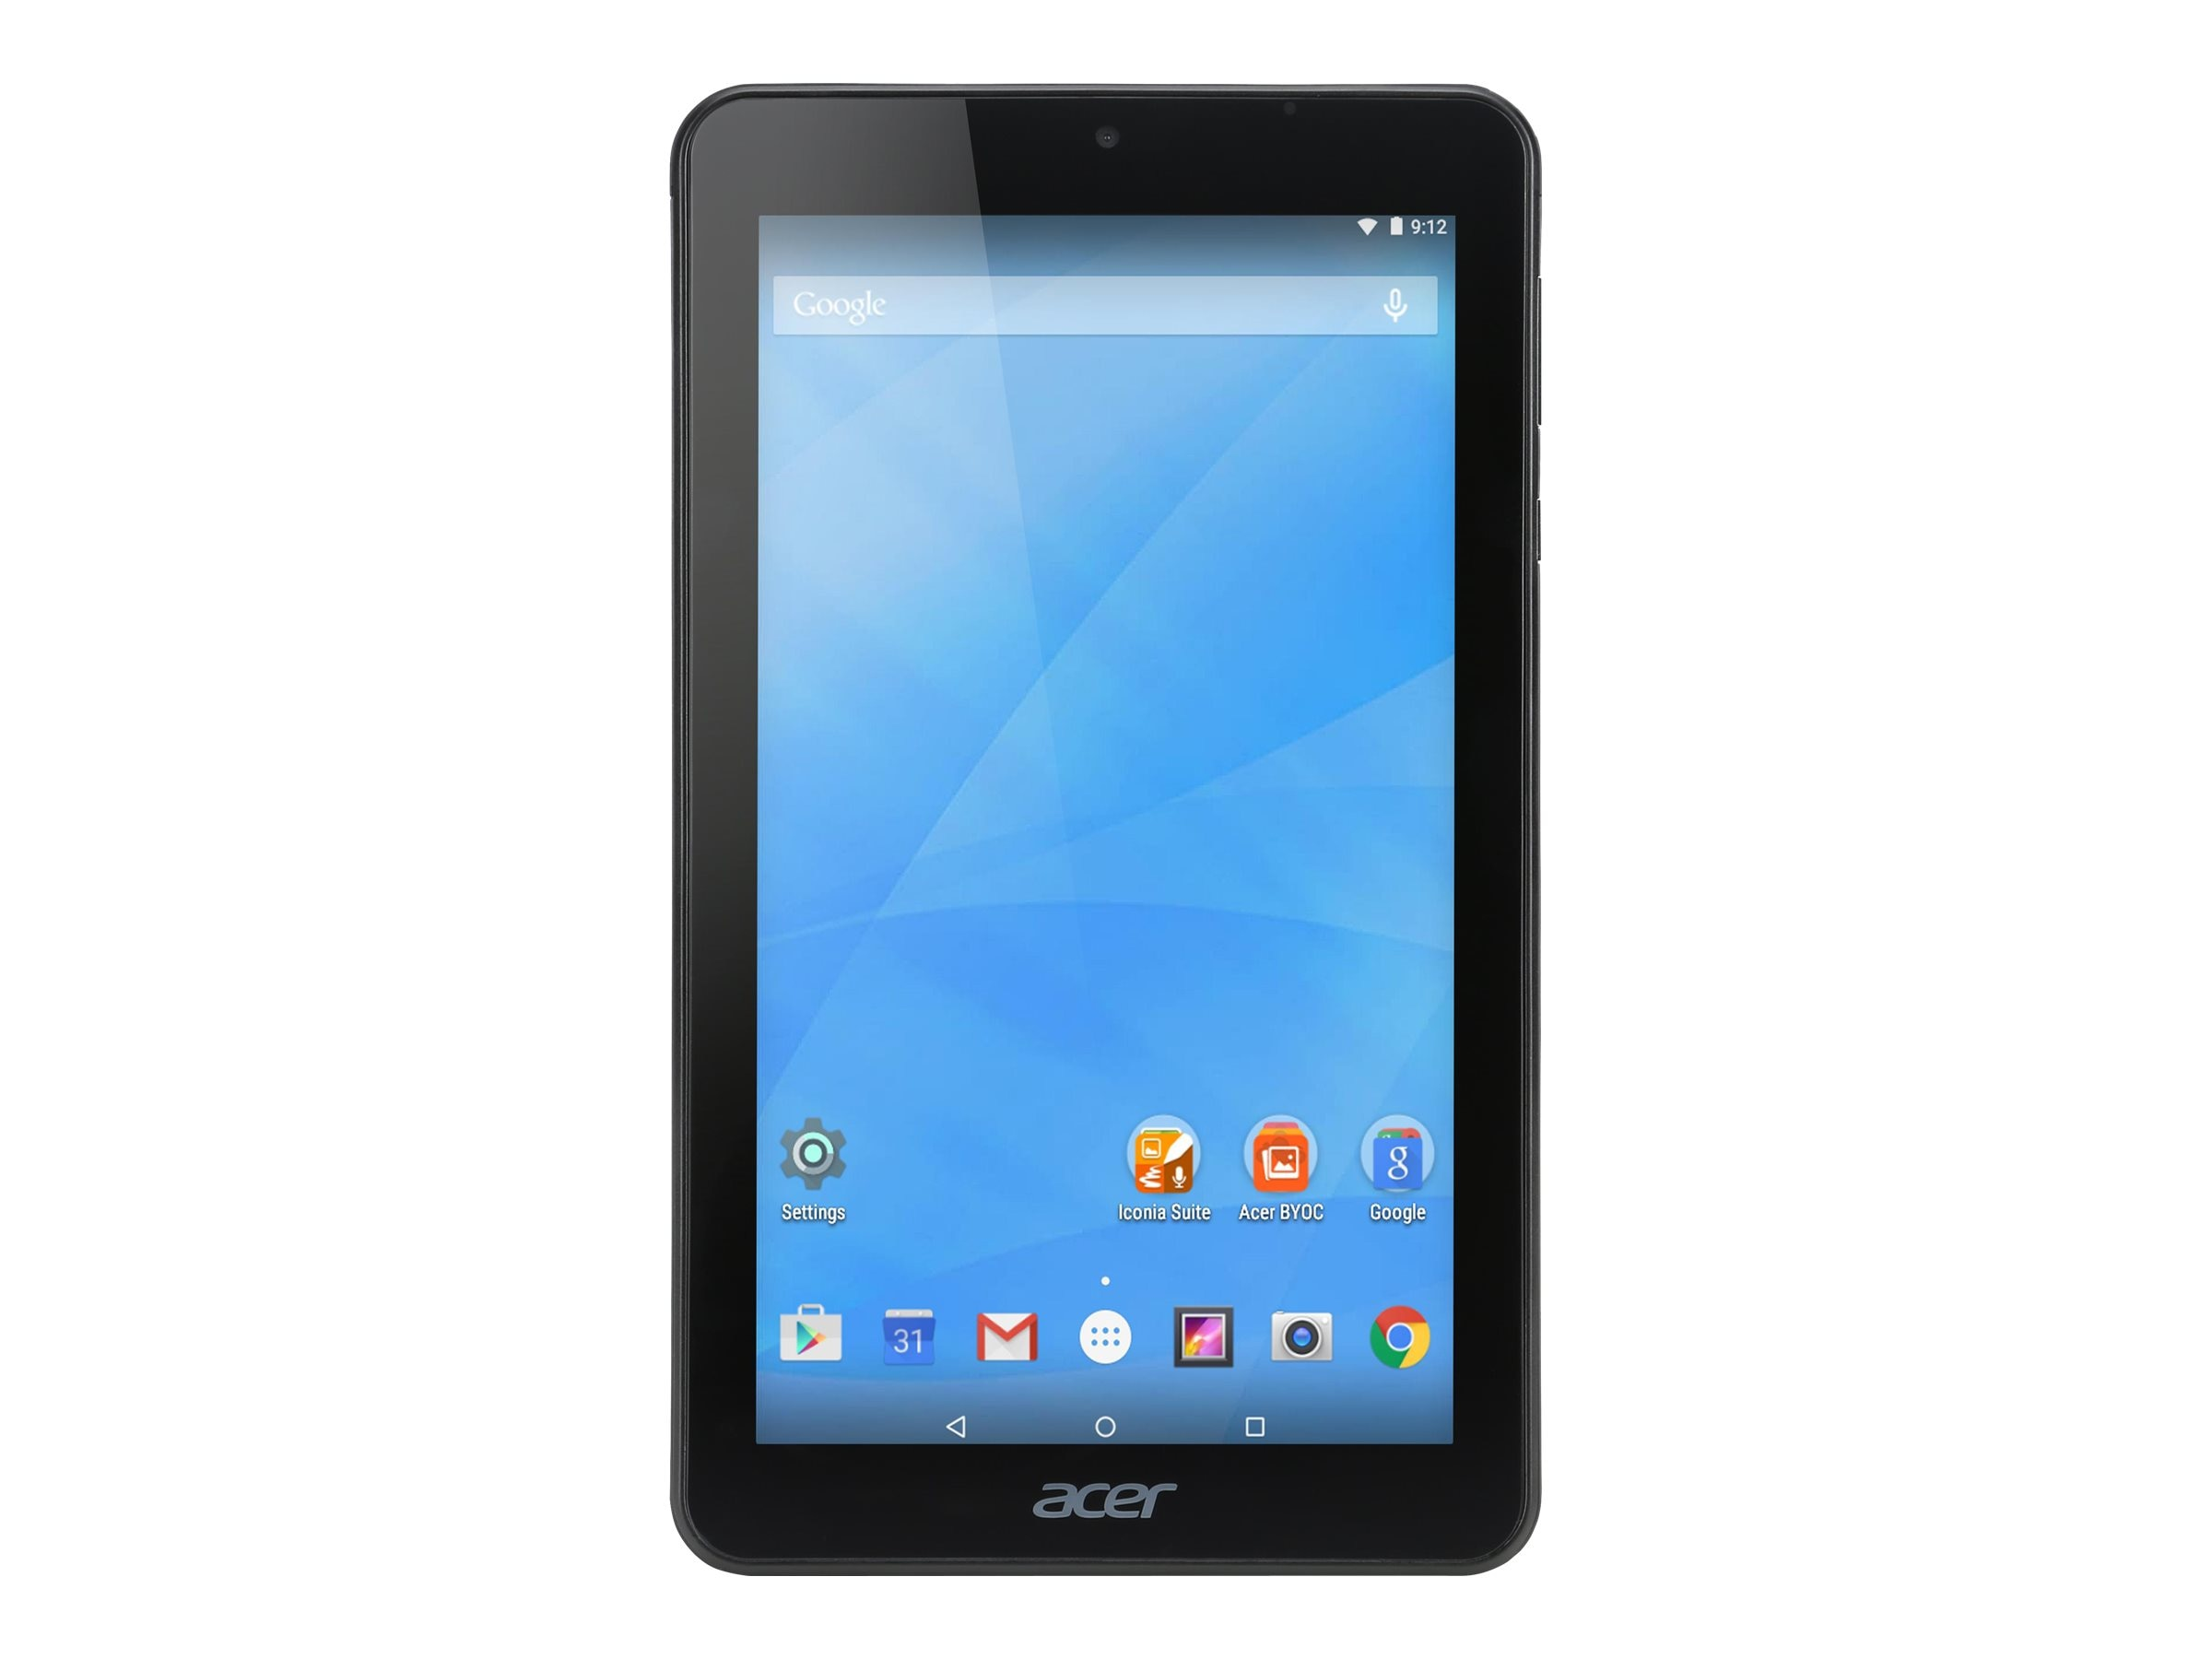 Acer Iconia B1-770-K3RC MT8127 1.3GHz 1GB 16GB bgn BT 2xWC 1C 7 WSVGA MT Android 5.0 Black, NT.LBRAA.001, 30715891, Tablets